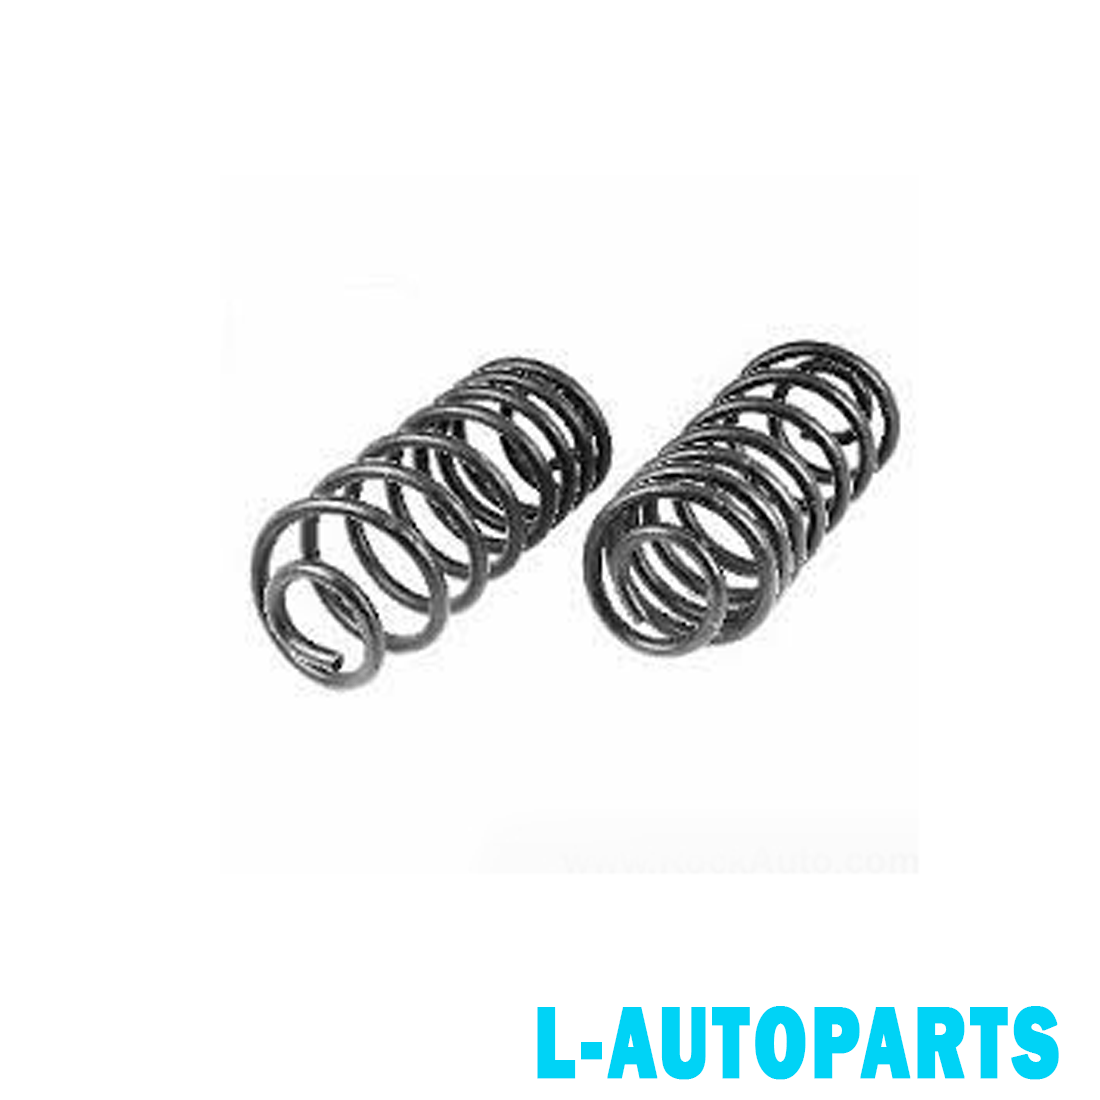 Rear Coil Spring For V8 4 6l Ford Crown Victoria